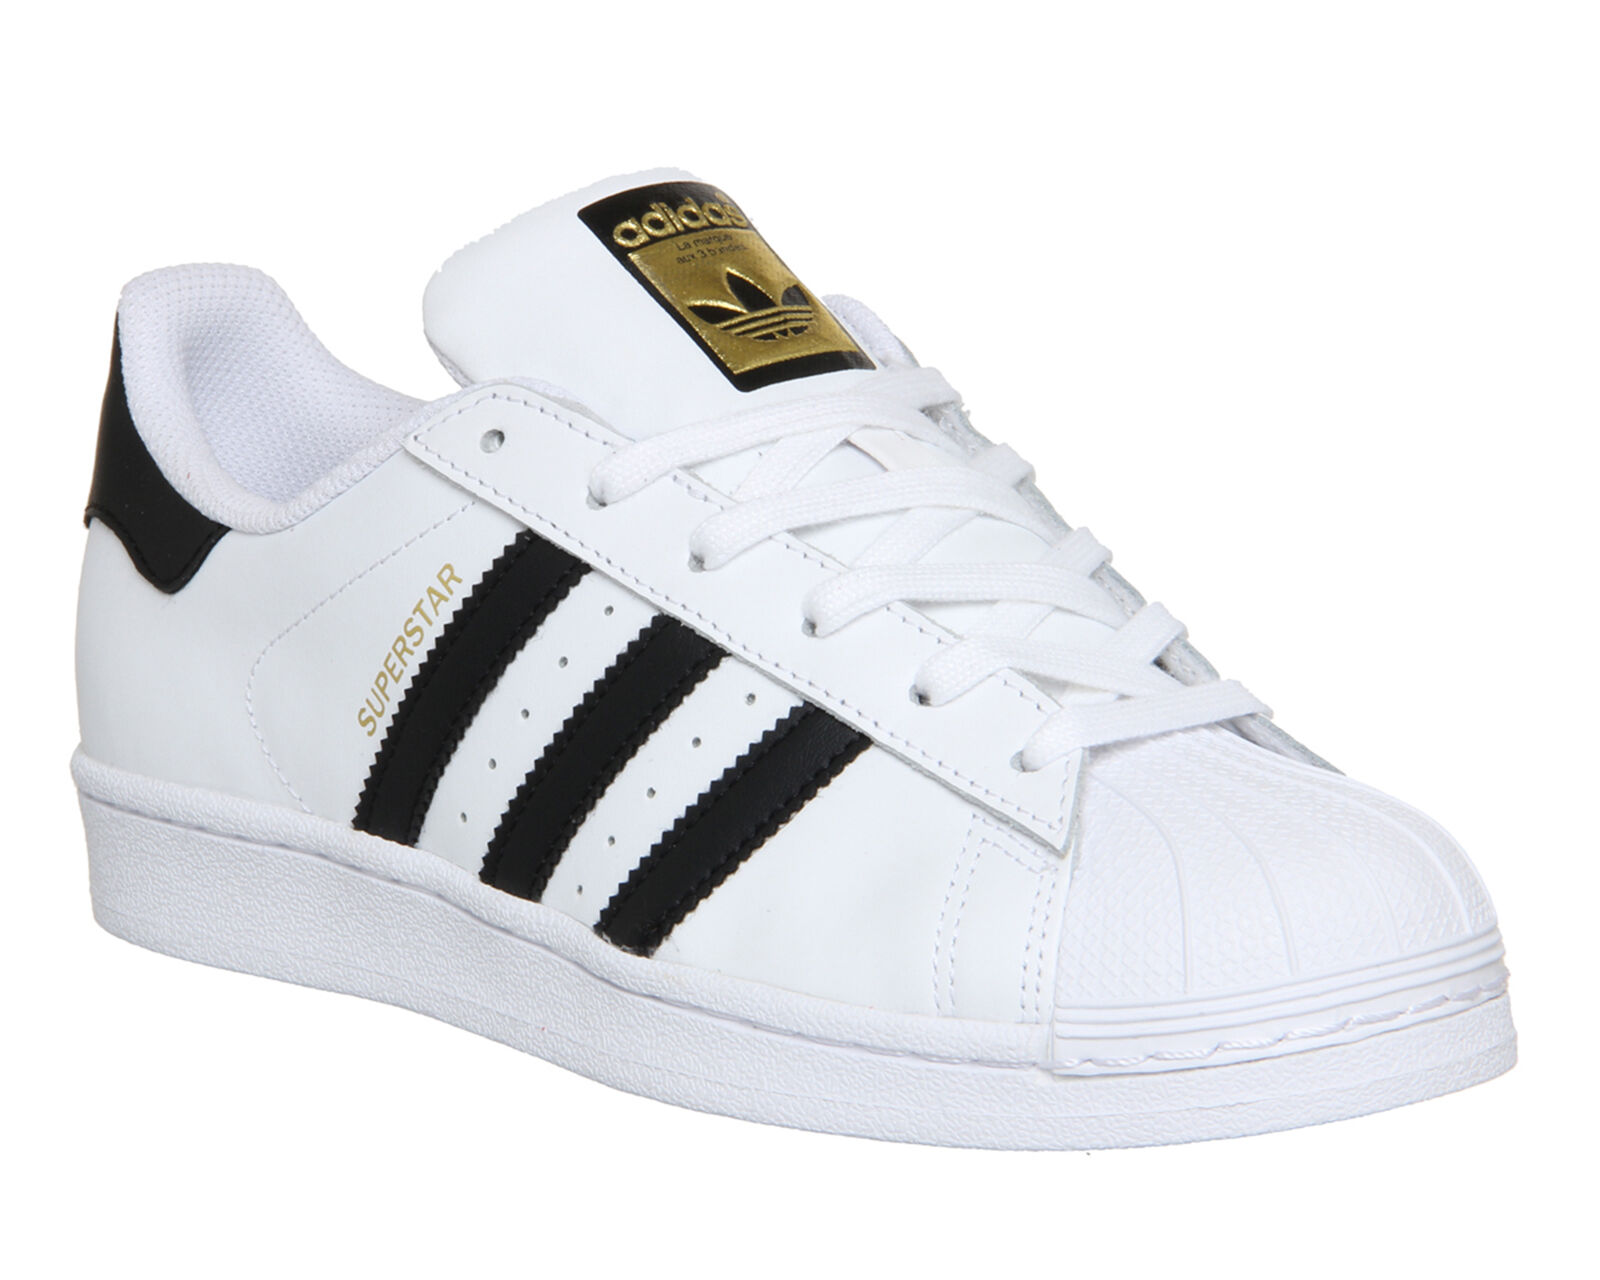 ADIDAS SUPERSTAR 7-13 Bianco/Nero Casual Retro Taglie 7-13 SUPERSTAR c77124 81c2a7